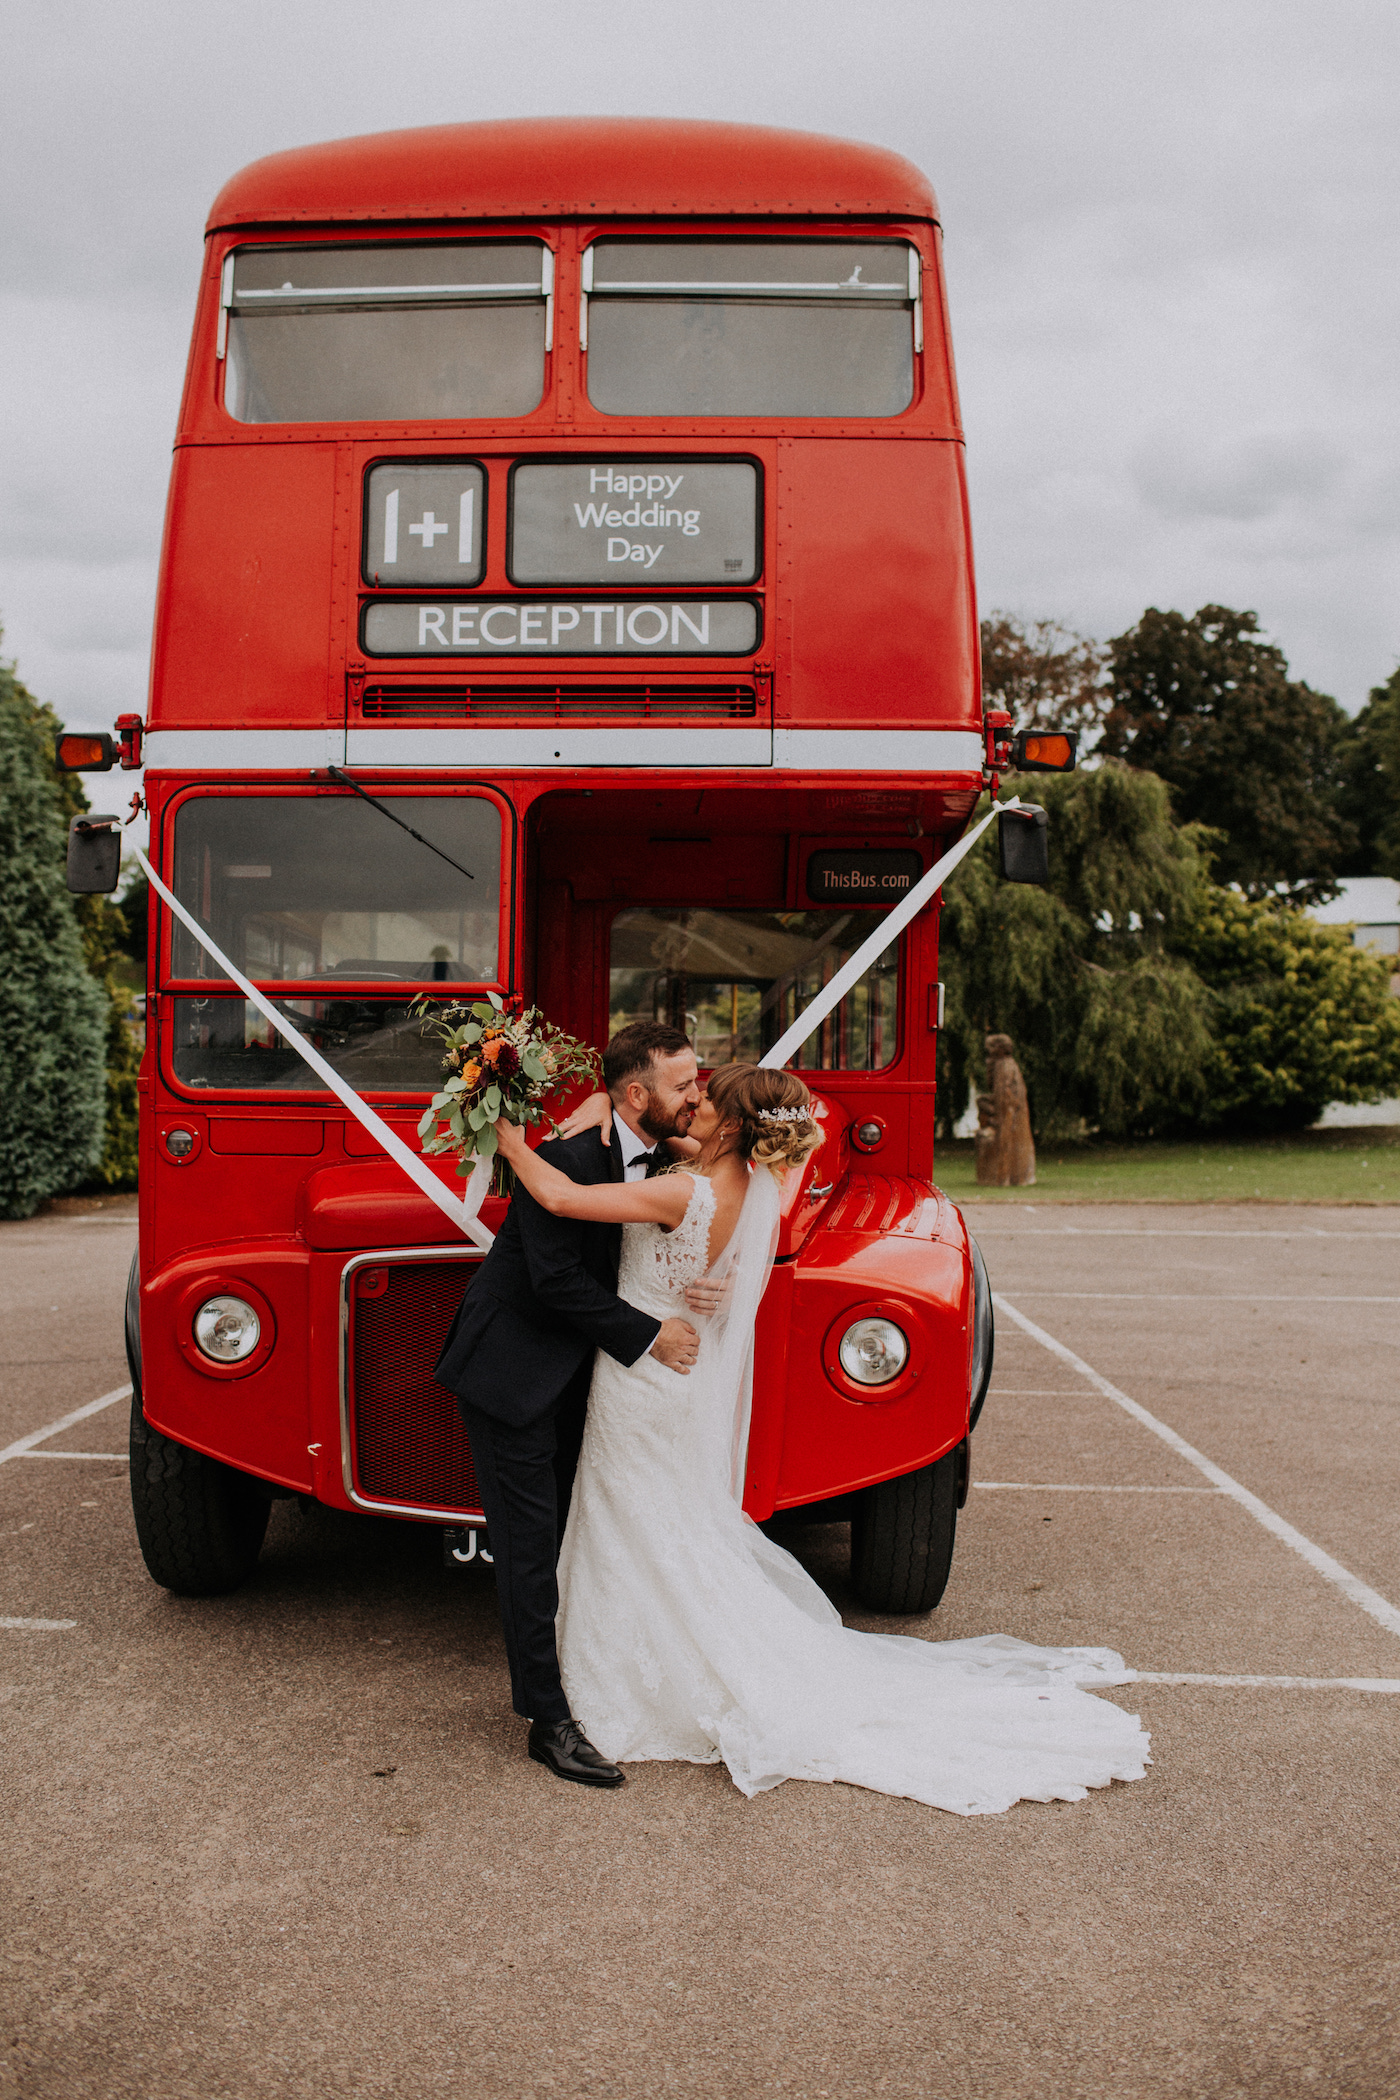 festival wedding red double decker bus